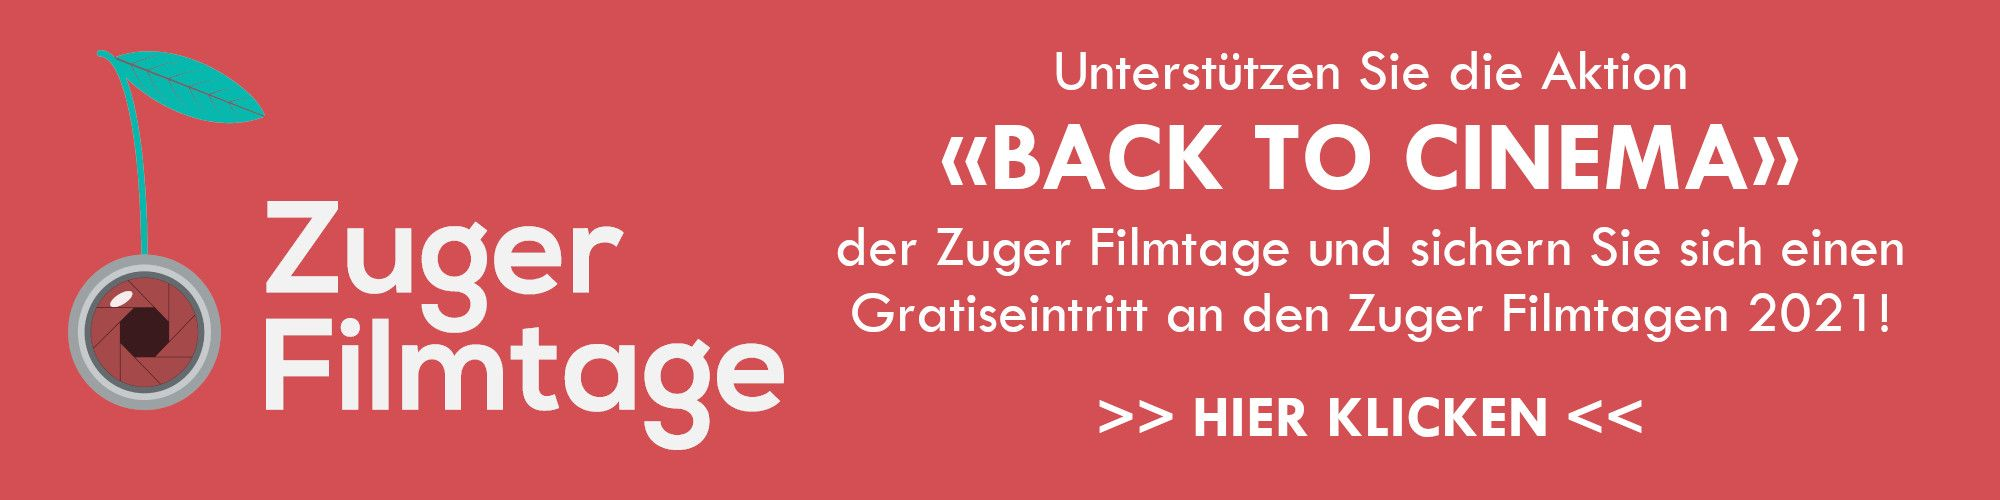 ZFT-BackCinemaAktion